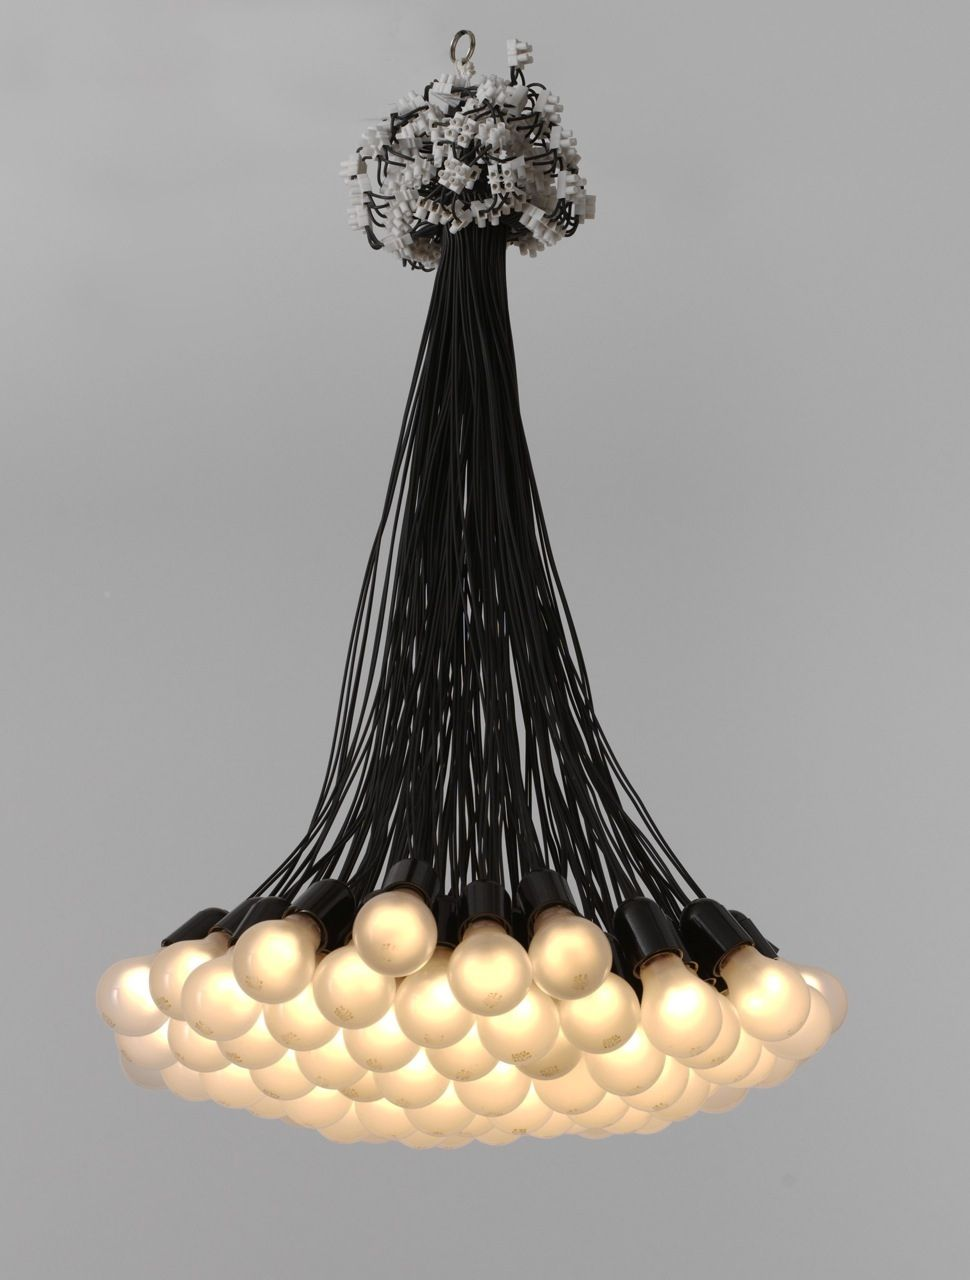 Rody graumans 85 lamps chandelier for droog design chandeliers rody graumans 85 lamps chandelier for droog design aloadofball Choice Image